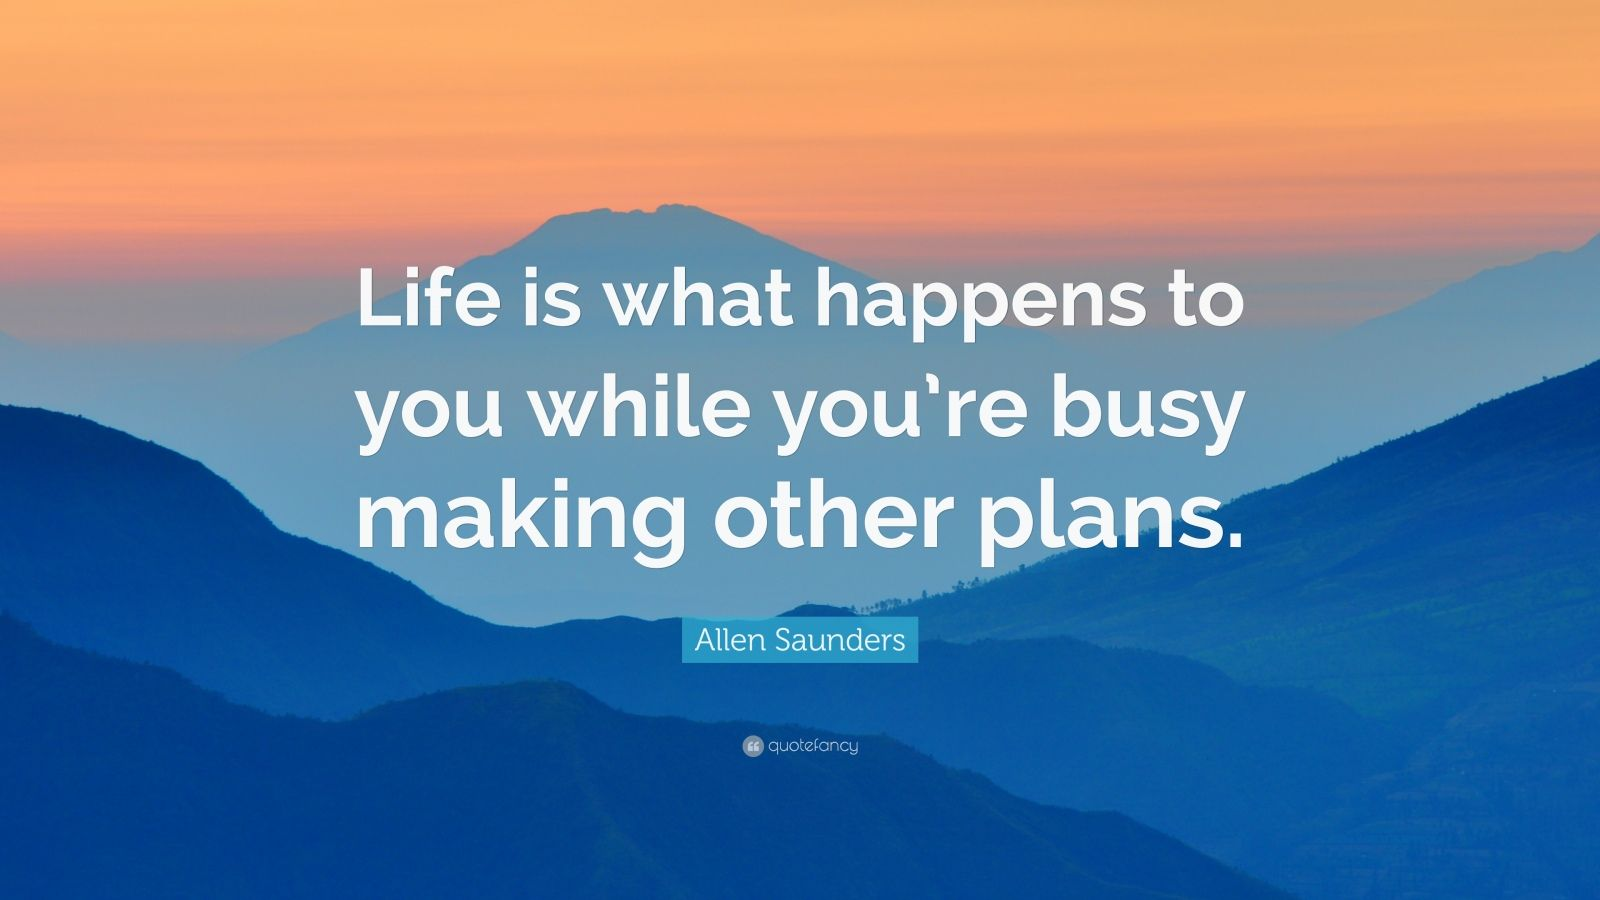 Ernest Hemingway Quote Wallpaper Allen Saunders Quote Life Is What Happens To You While